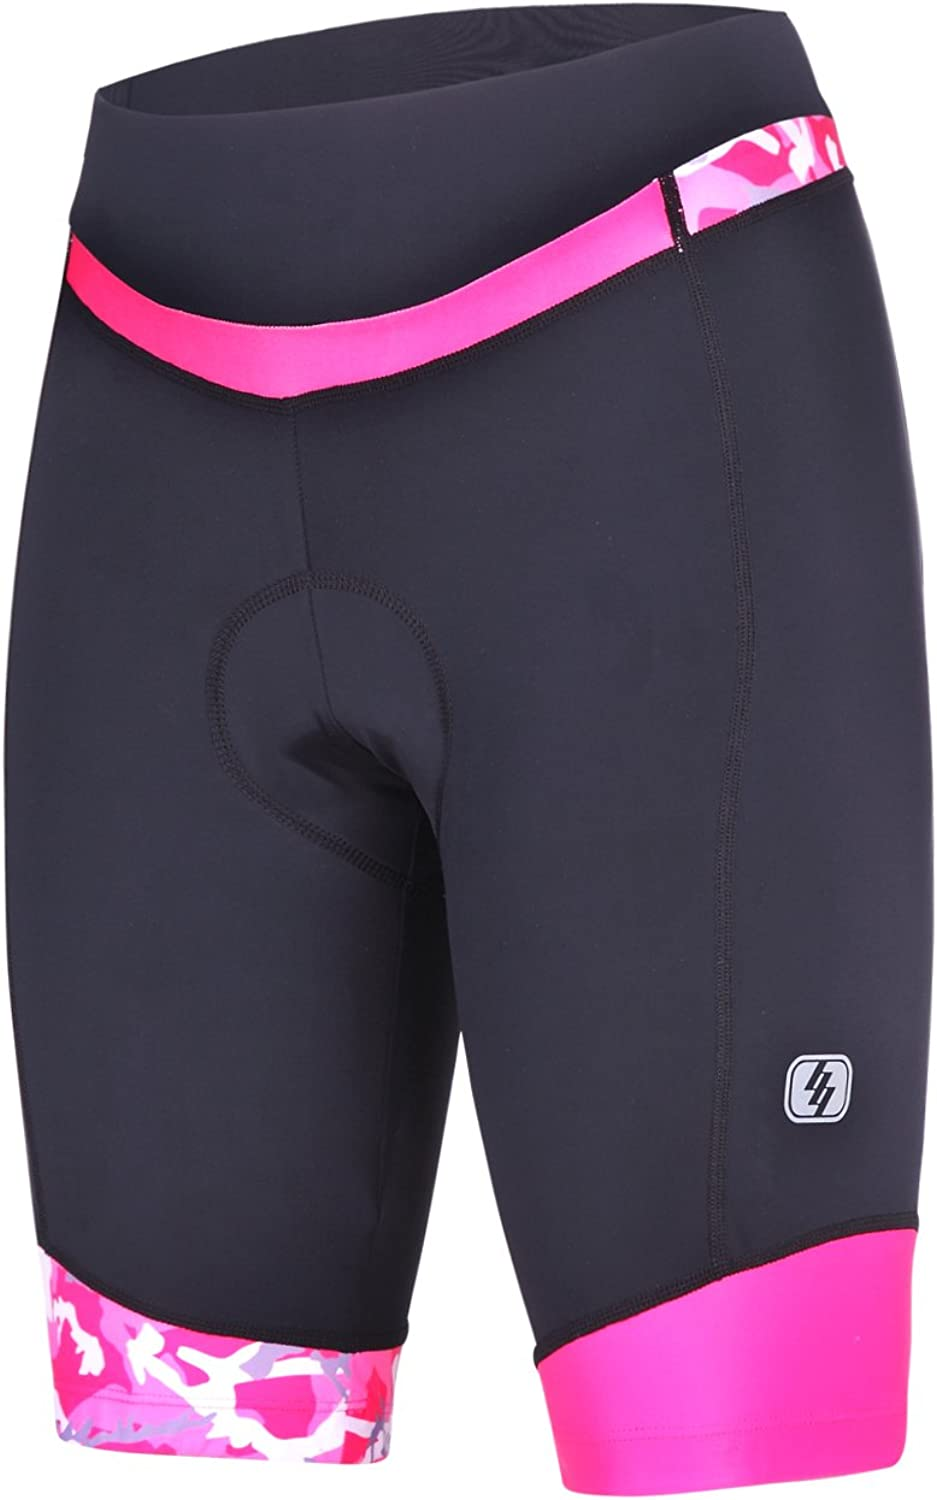 Women's Cycling Shorts With 3D Padded Bike Shorts With Reflective Elements: Sports & Outdoors